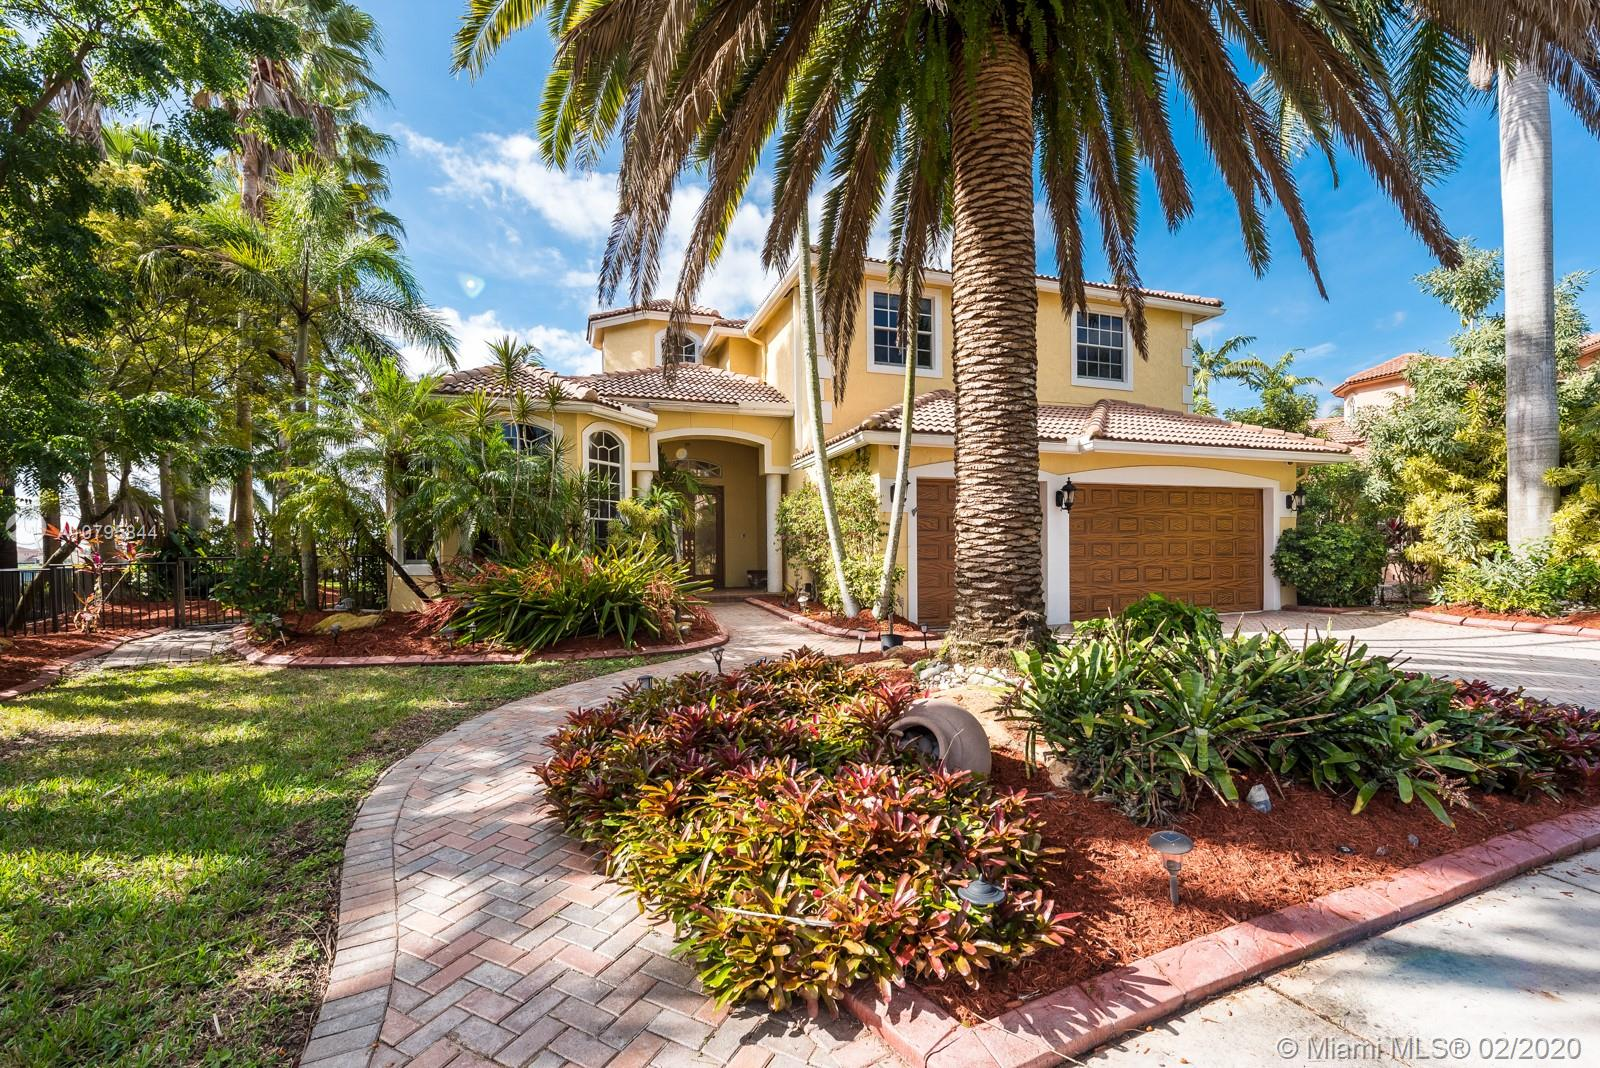 3300 SW 190th Ave, Miramar, Florida 6 Bedroom as one of Homes & Land Real Estate